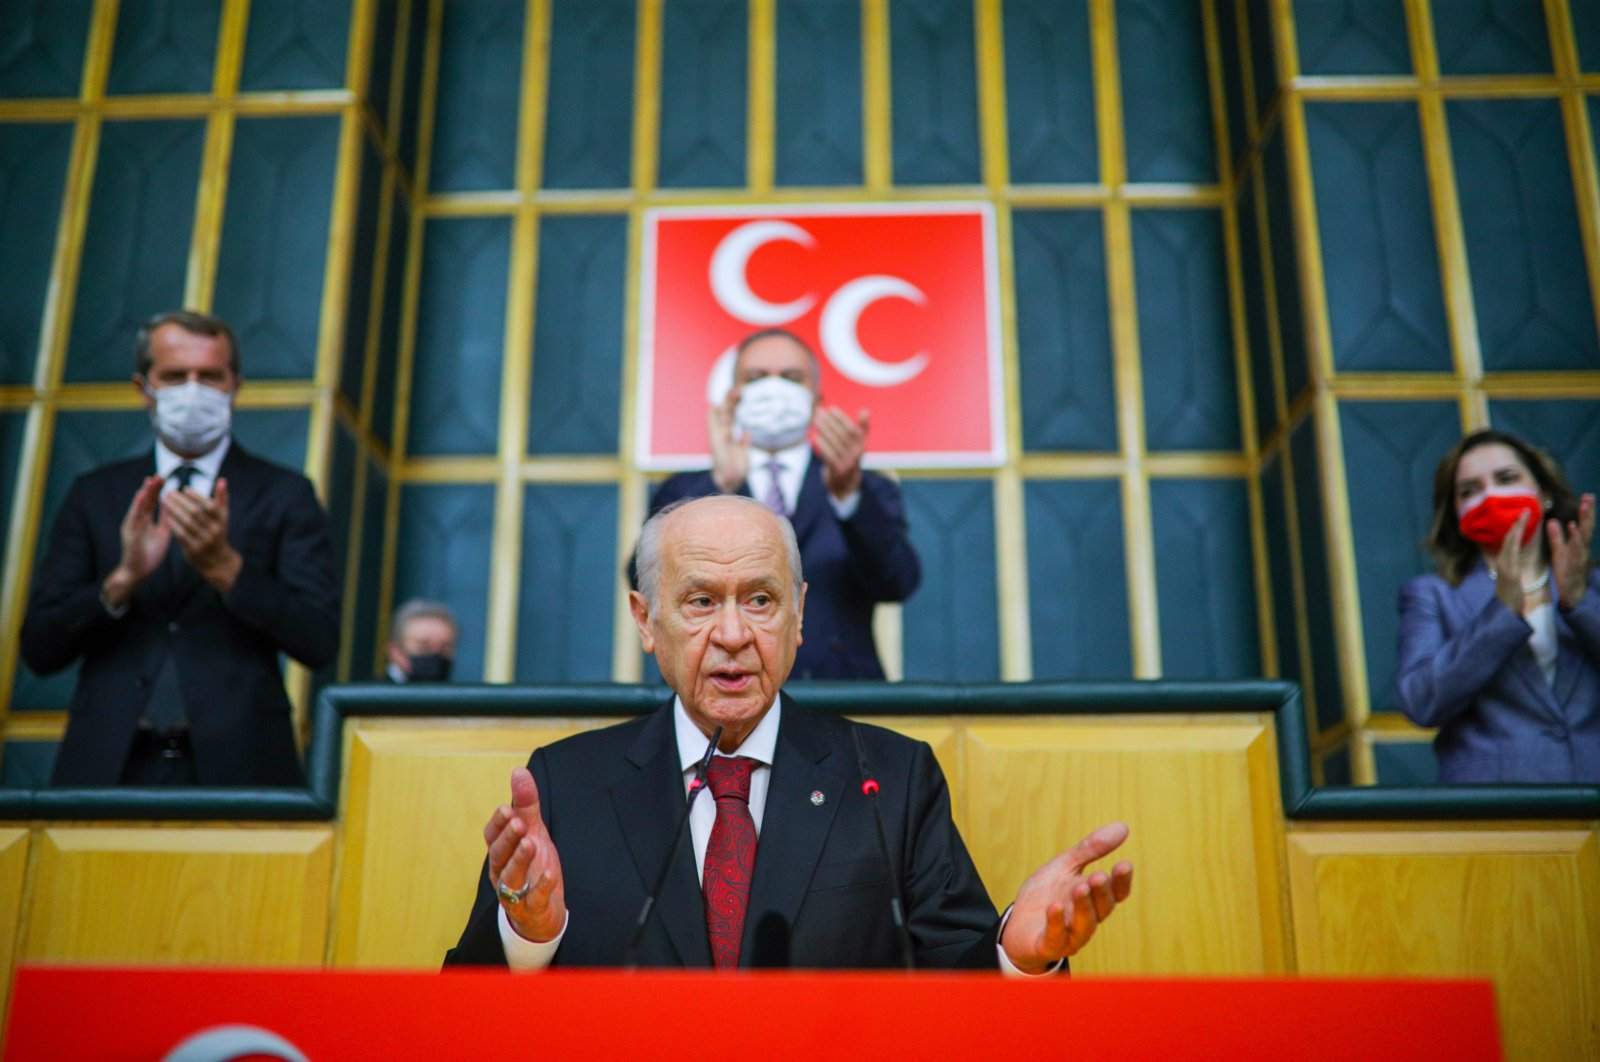 MHP Chairperson Devlet Bahçeli speaks at his party's parliamentary group meeting in the Turkish capital Ankara, June 29, 2021. (Sabah File Photo)